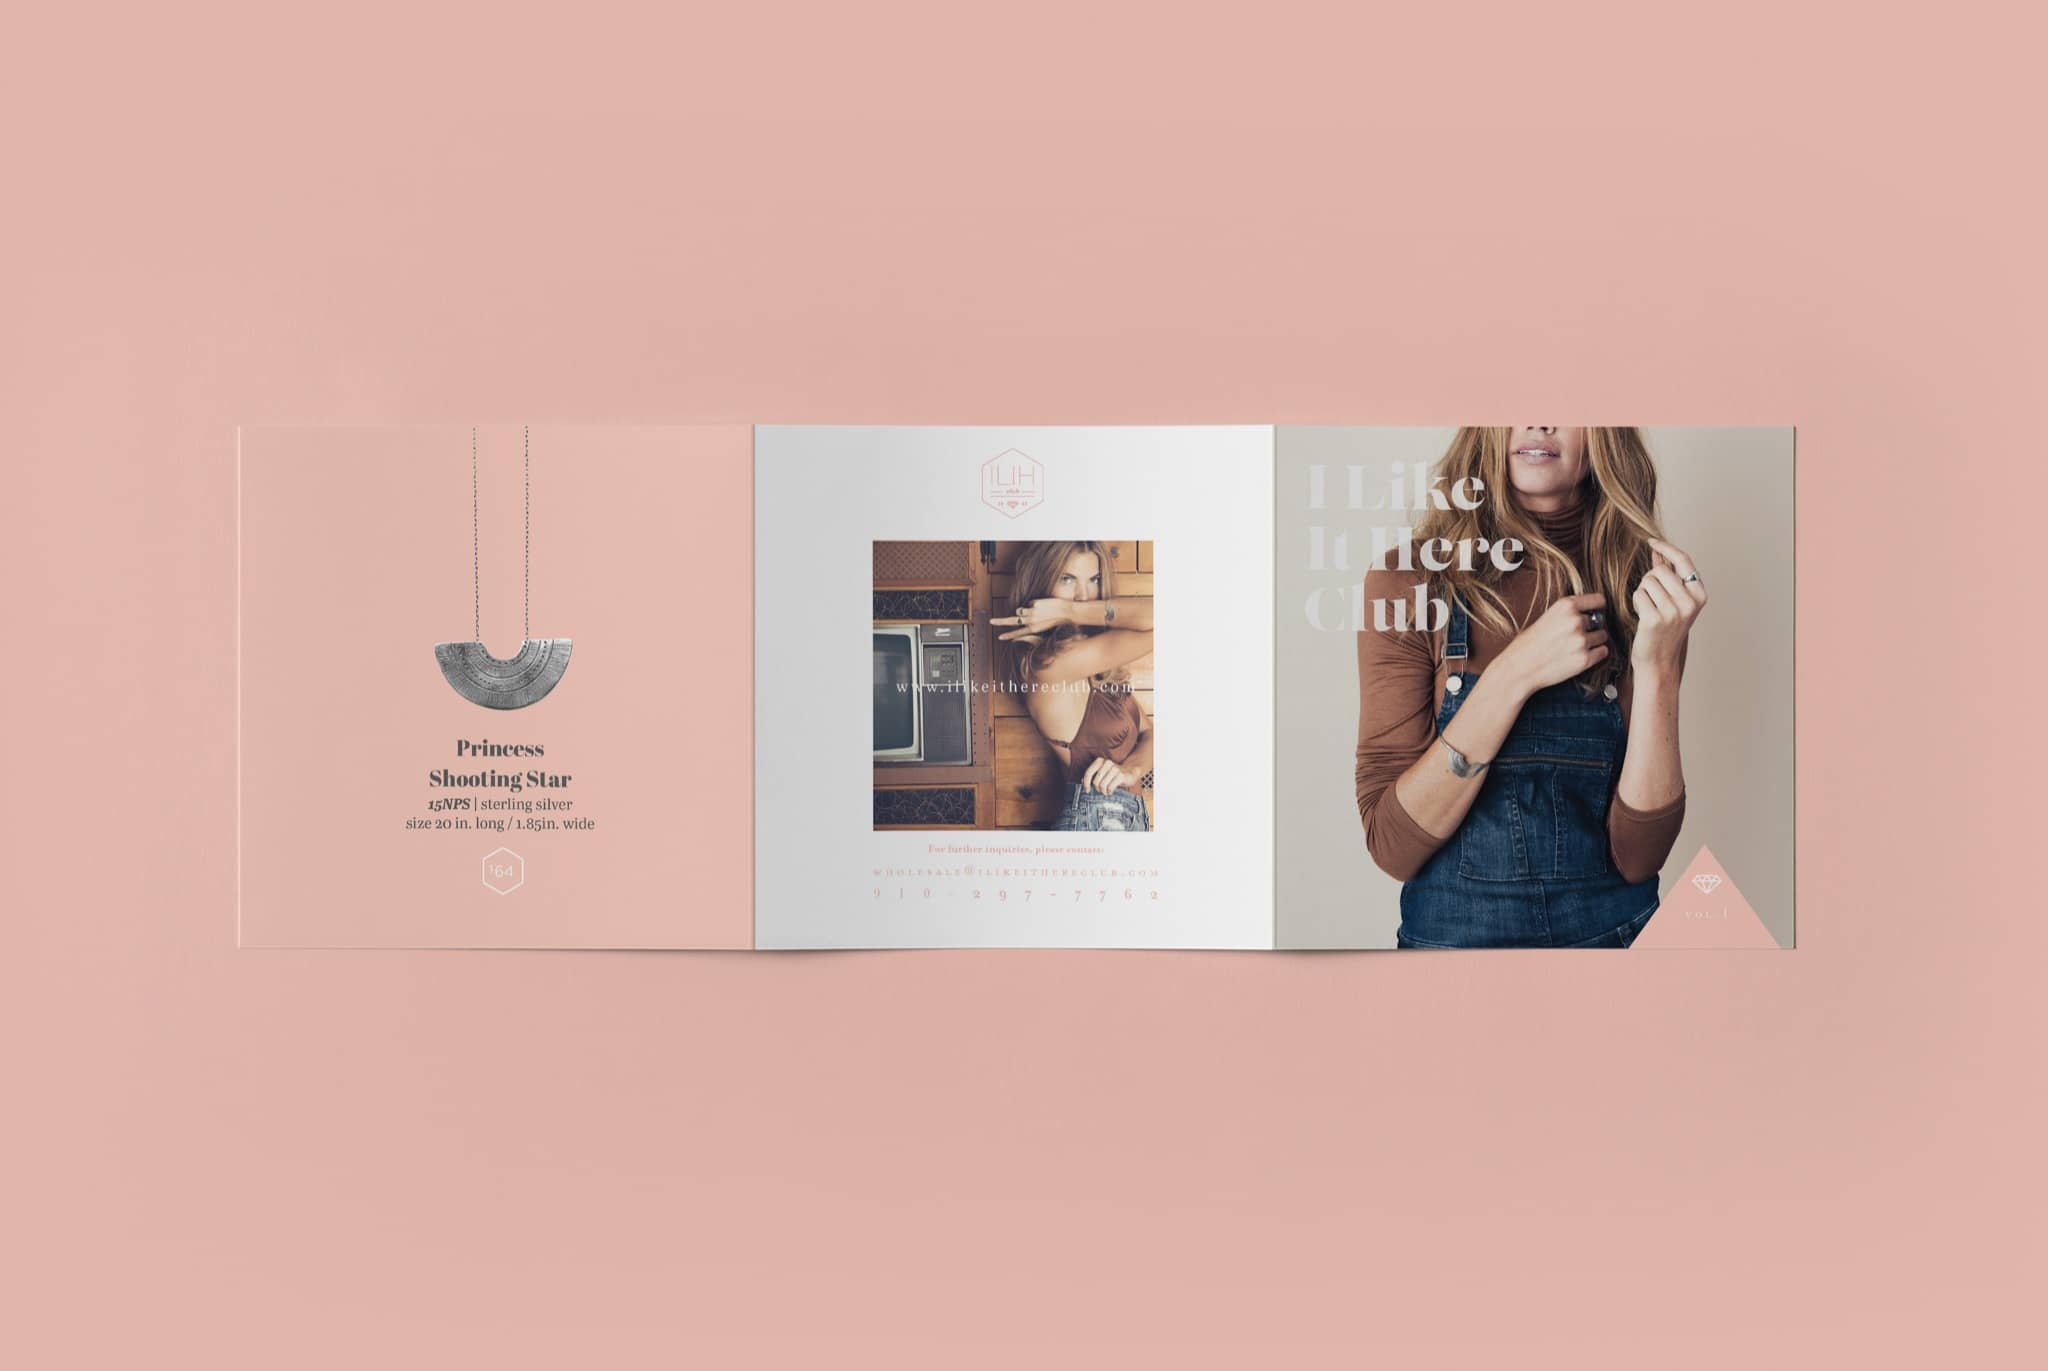 I LIKE IT HERE CLUB Trade Show Catalog and Lookbook Design By Brand Engine